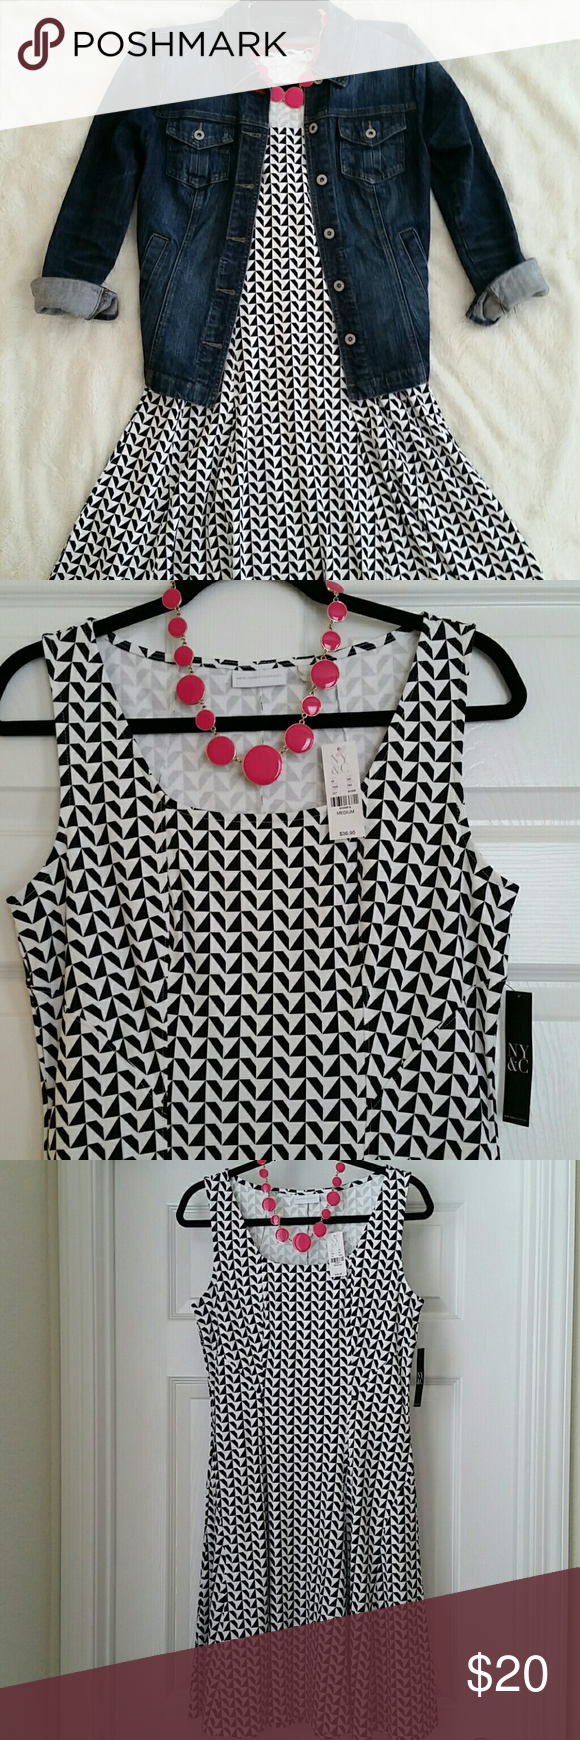 New York & Company Dress New York & Company, black and white geometric patterned dress. New with tags. I purchased on Poshmark but it doesn't fit me.  Asking what I paid for it. New York & Company Dresses